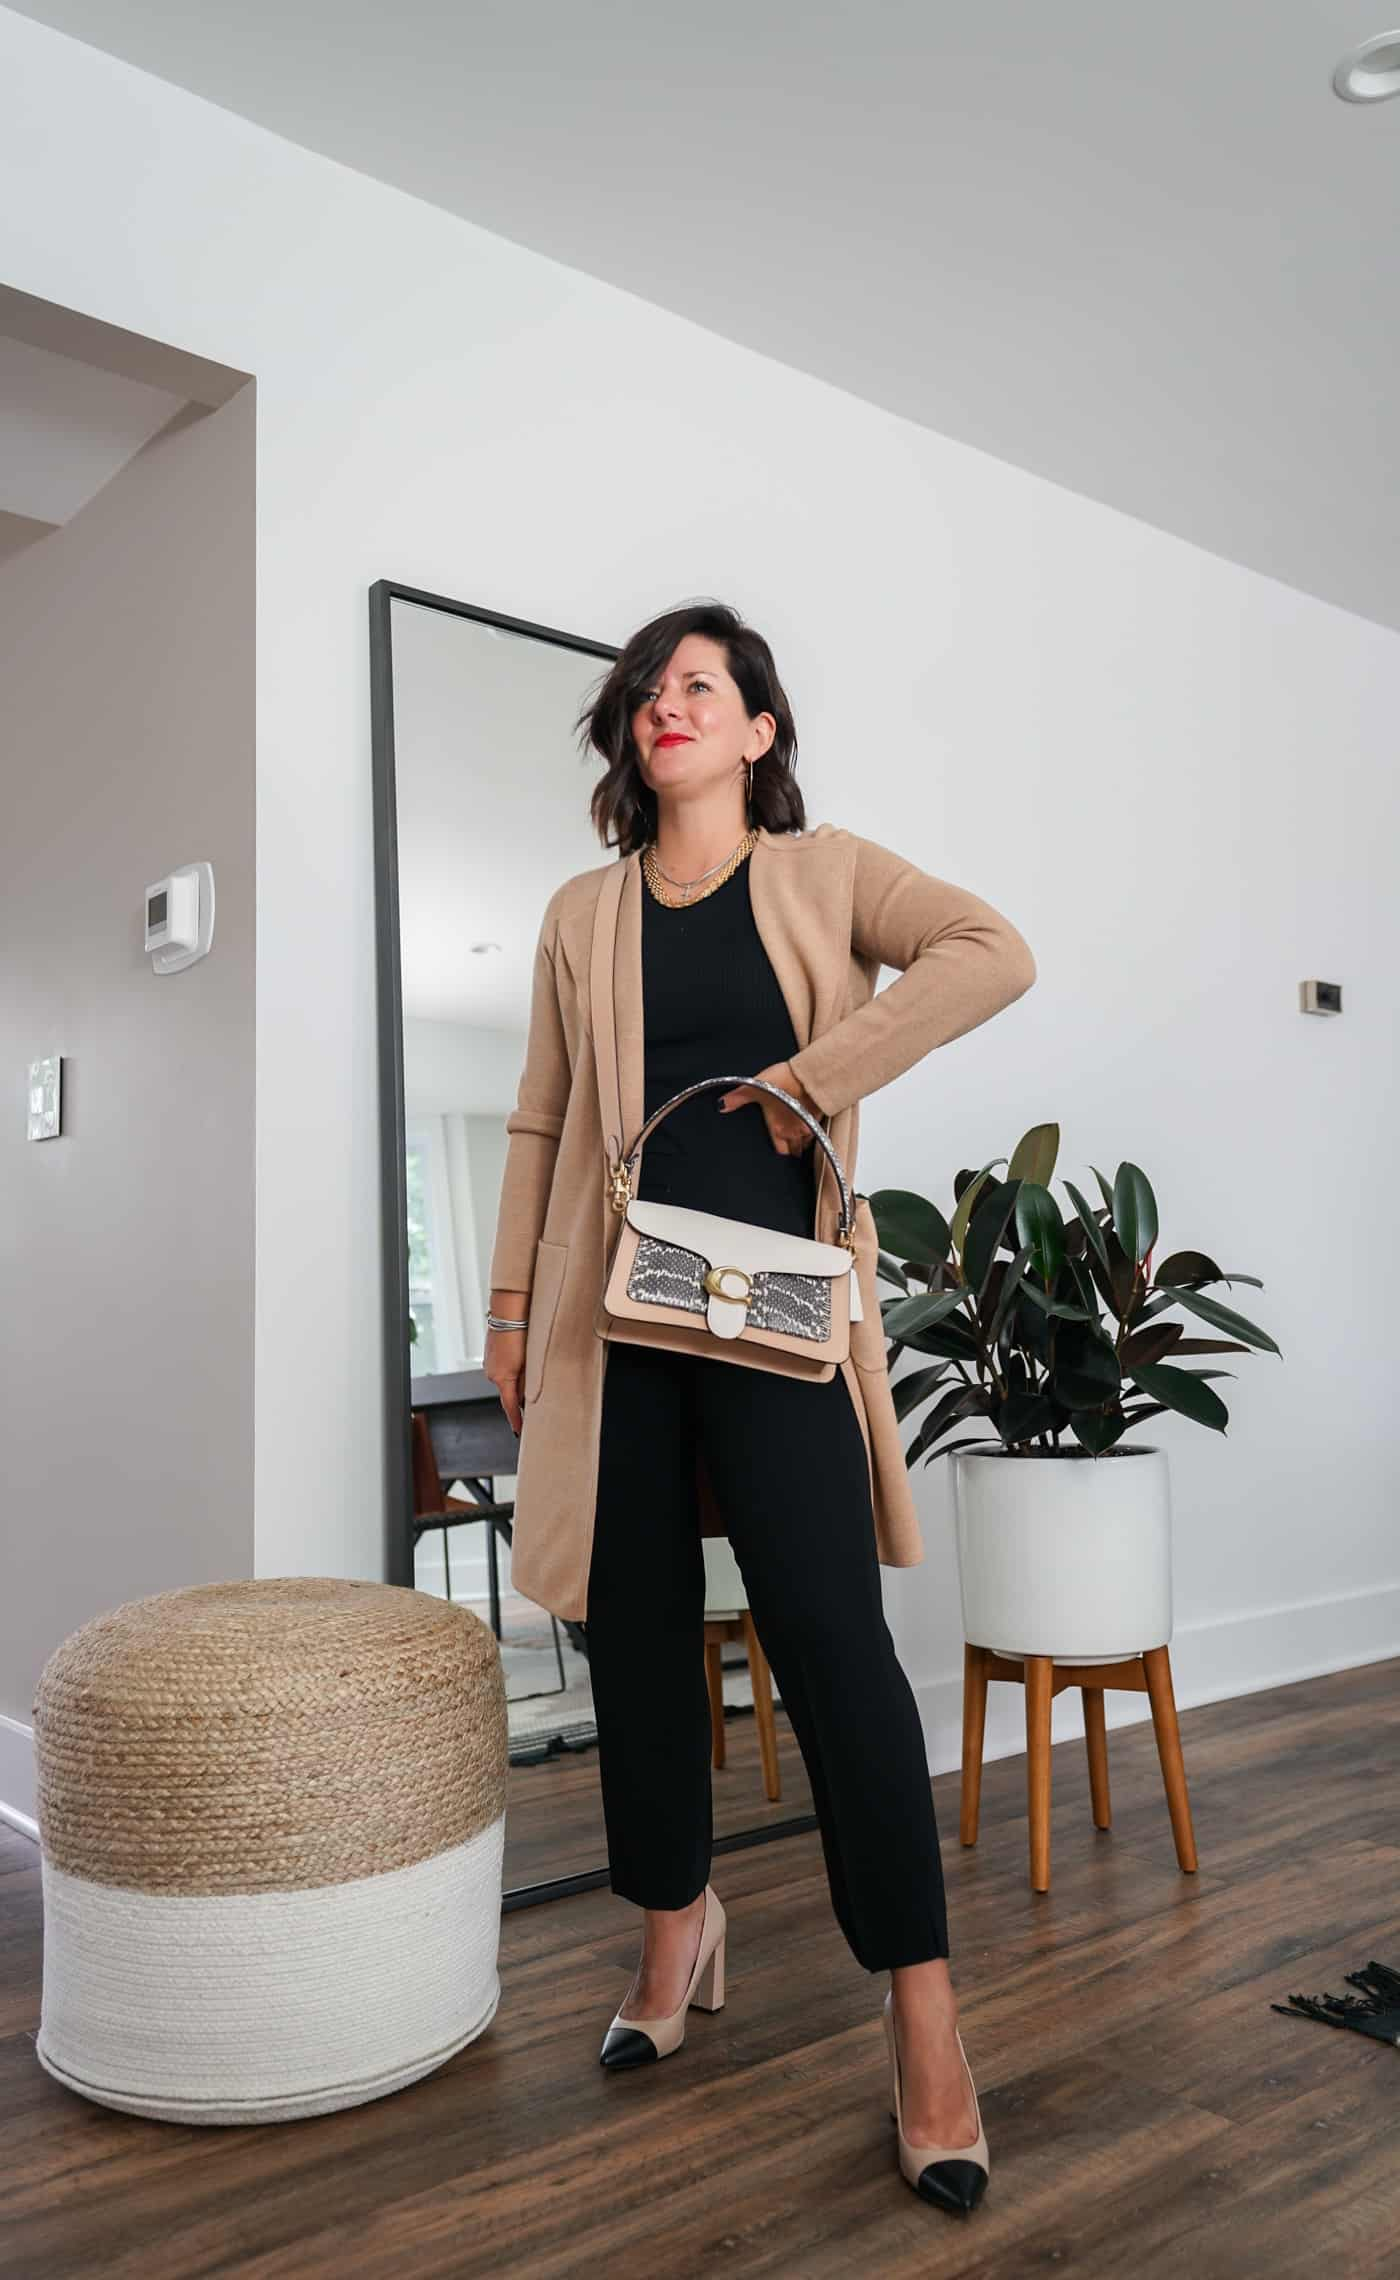 A Lily Love Affair shares how to wear a long cardigan with black dress pants and heels